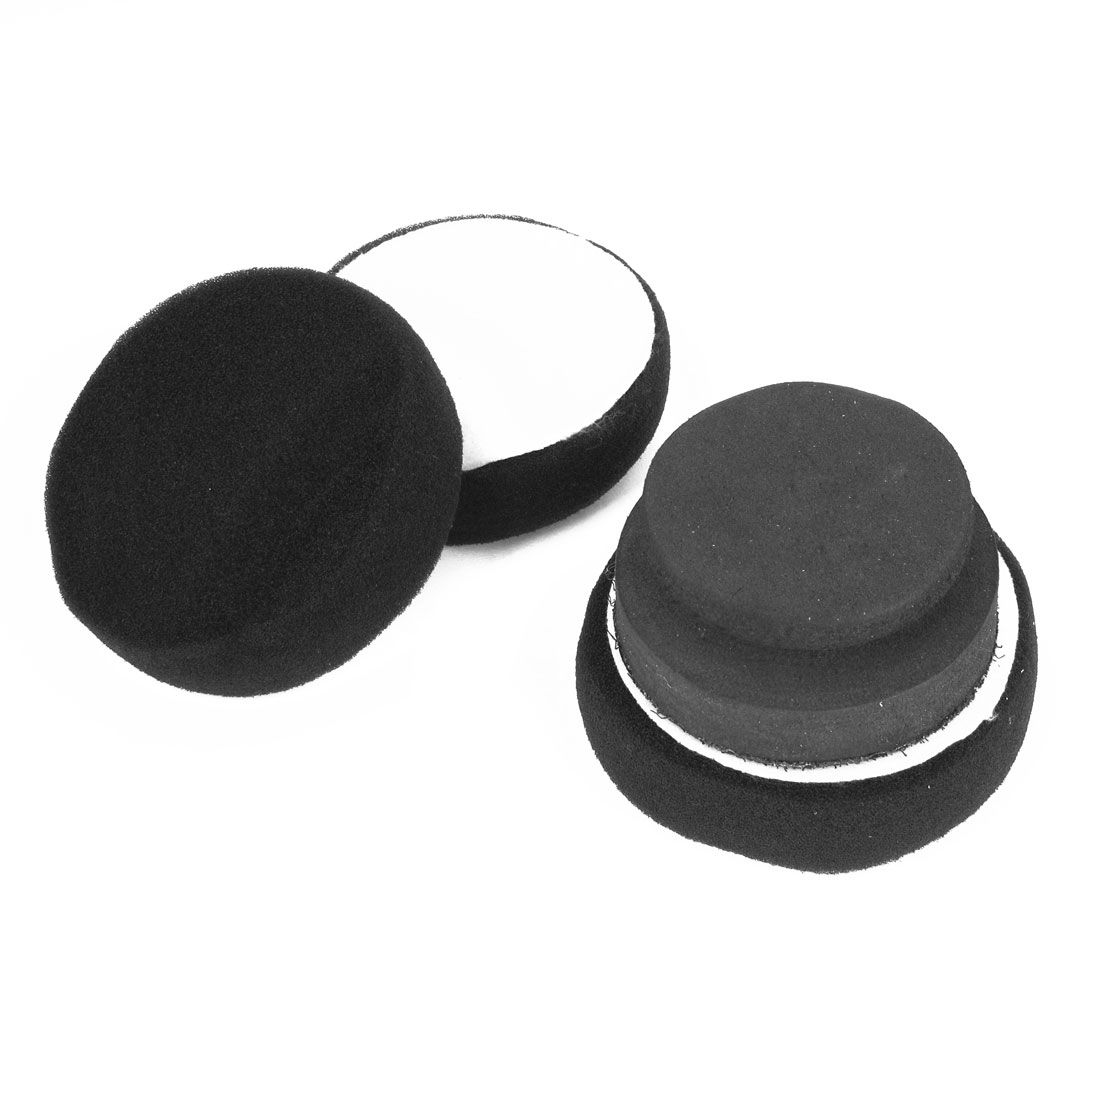 3 in 1 Black Washing Polishing Waxing Wheel Sponge Pads Tool for Car Auto